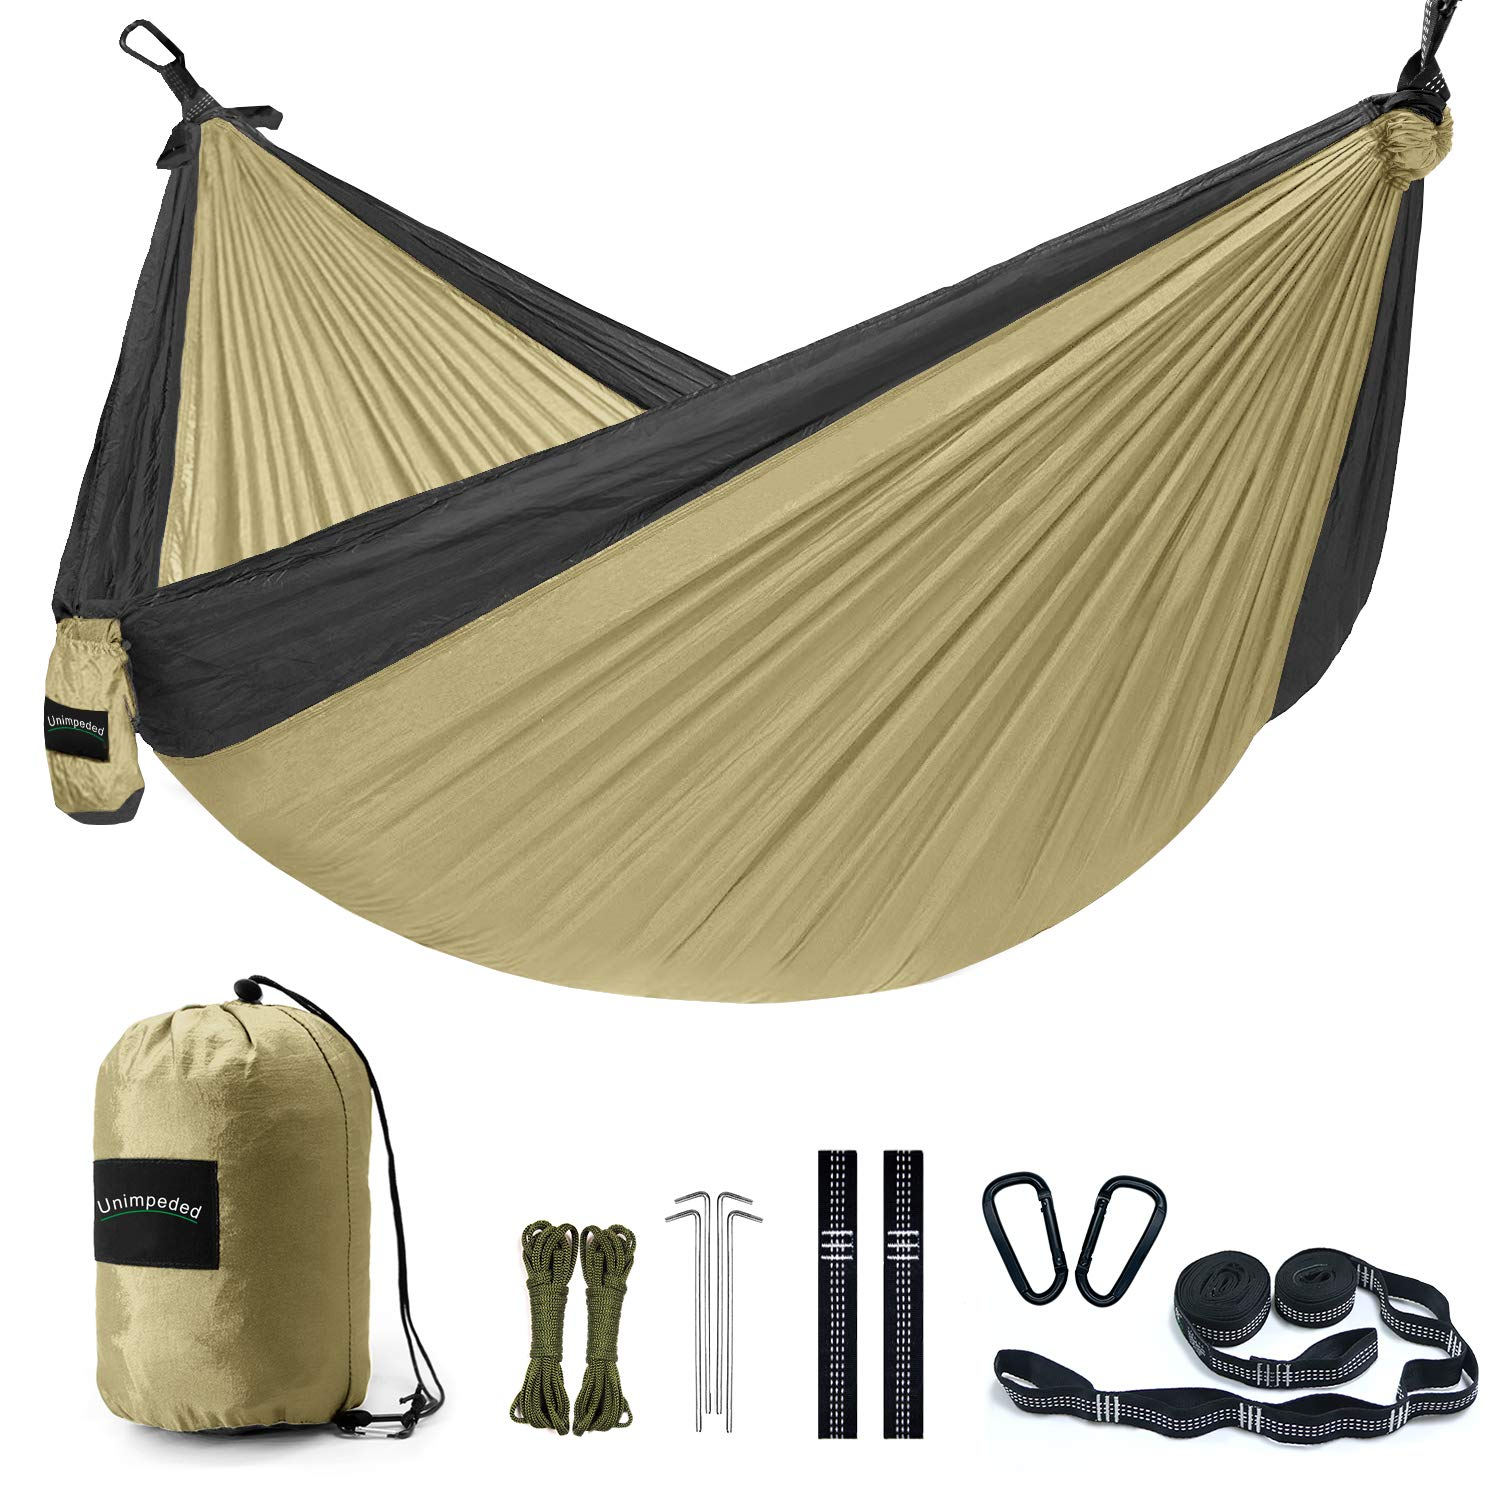 Unimpeded Camping Hammock Multi-Functional Single Double Portable Hammock Heavy Duty Straps Carabiners – Lightweight Nylon Parachute Hammock Many Accessories Travel, Backpacking,Camp